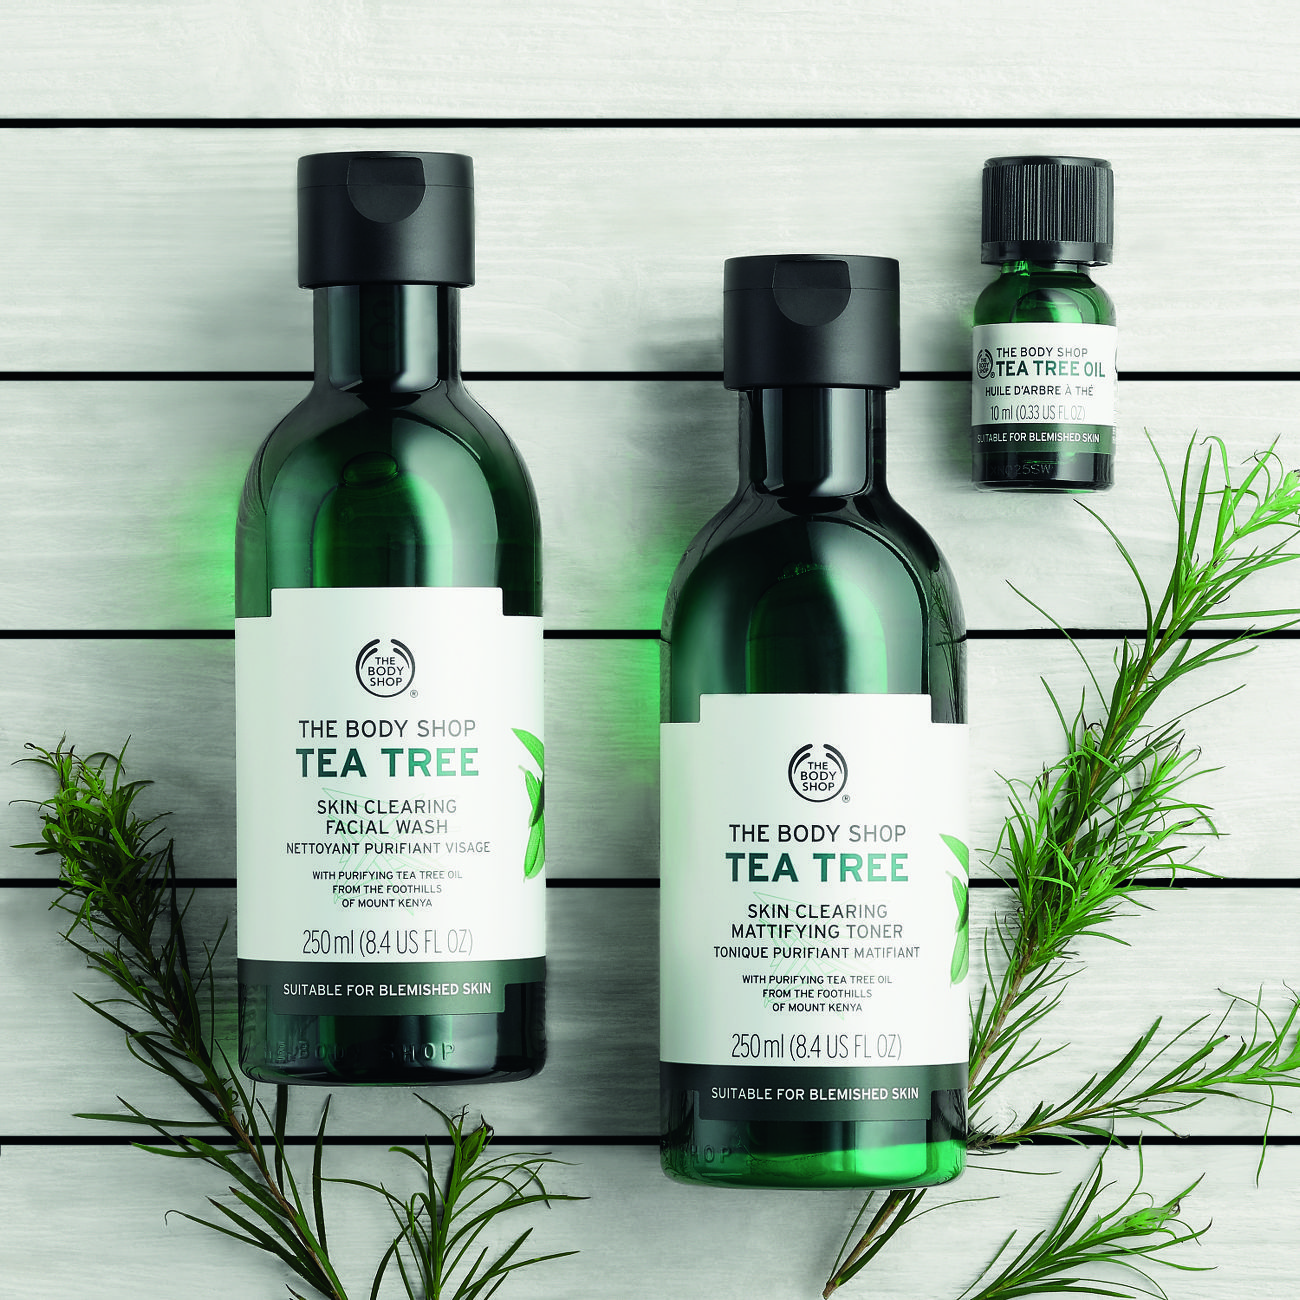 40 Brilliant Tween And Teenage Skincare Products Body Shop Tea Tree Body Shop Skincare The Body Shop